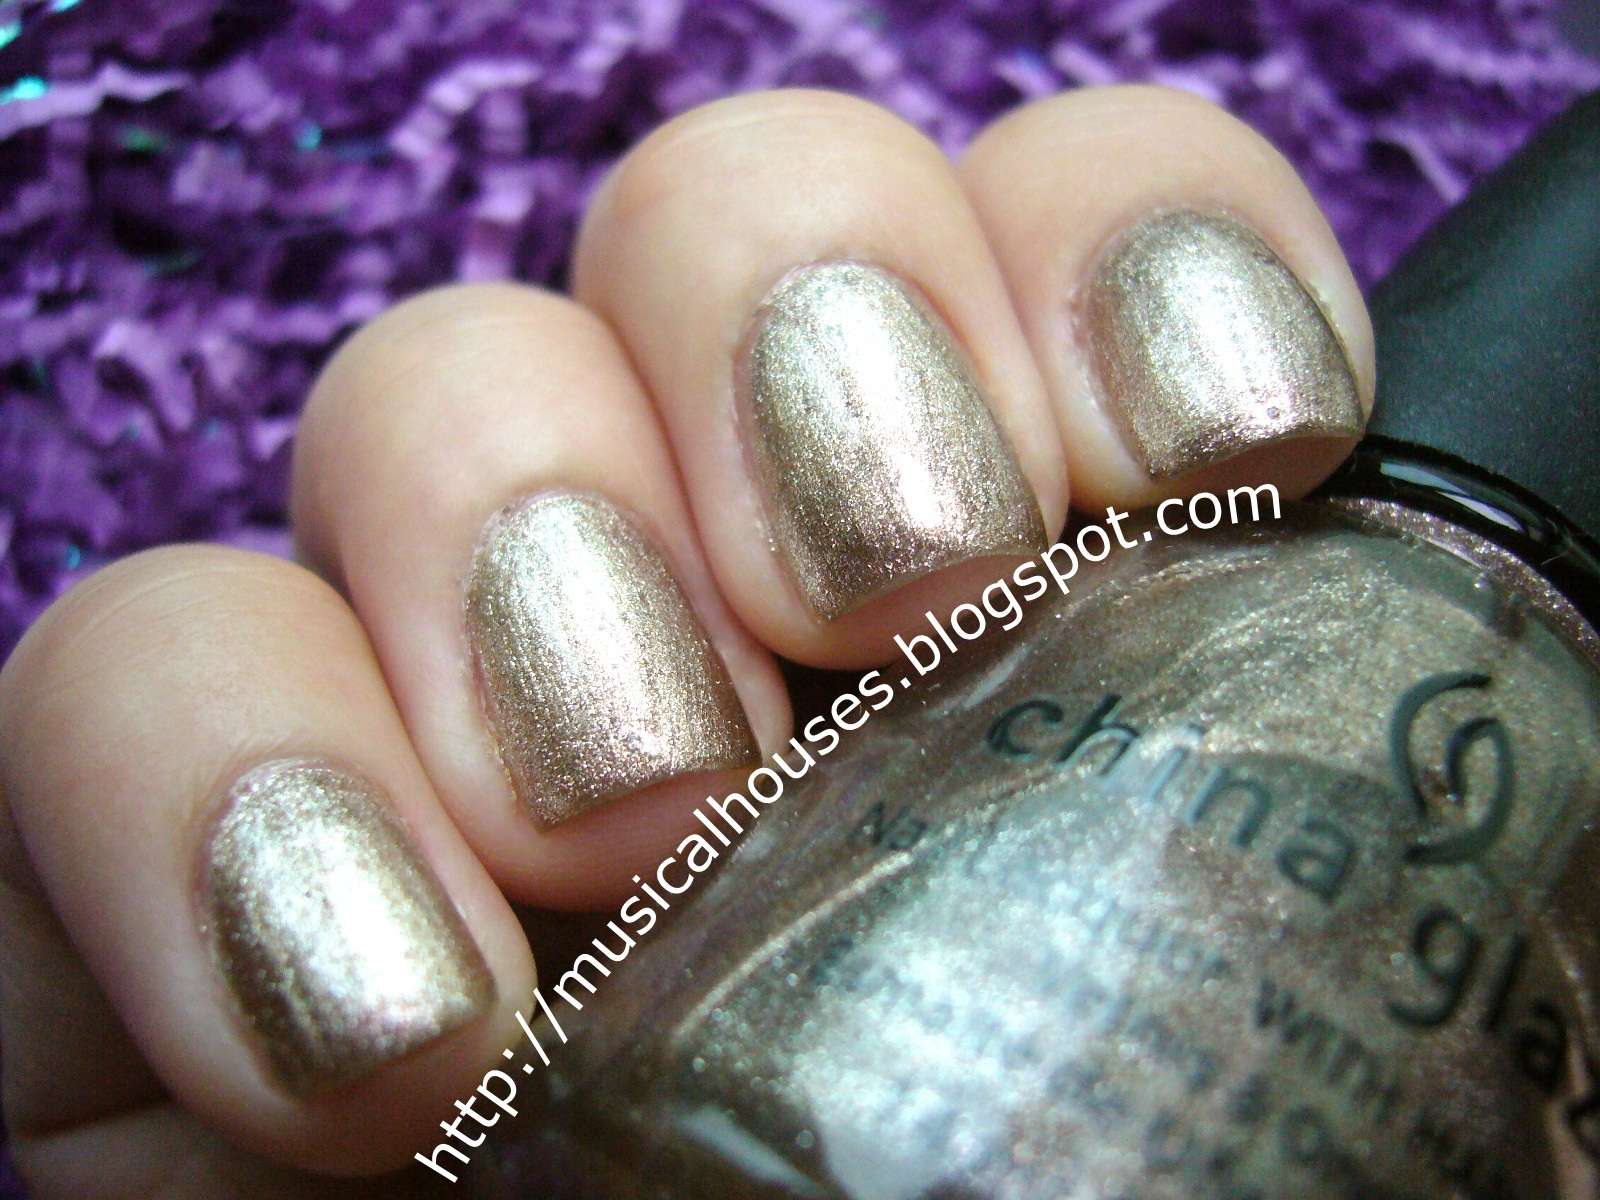 China Glaze Swing Baby: Glamorous Gold Nails! - of Faces and Fingers